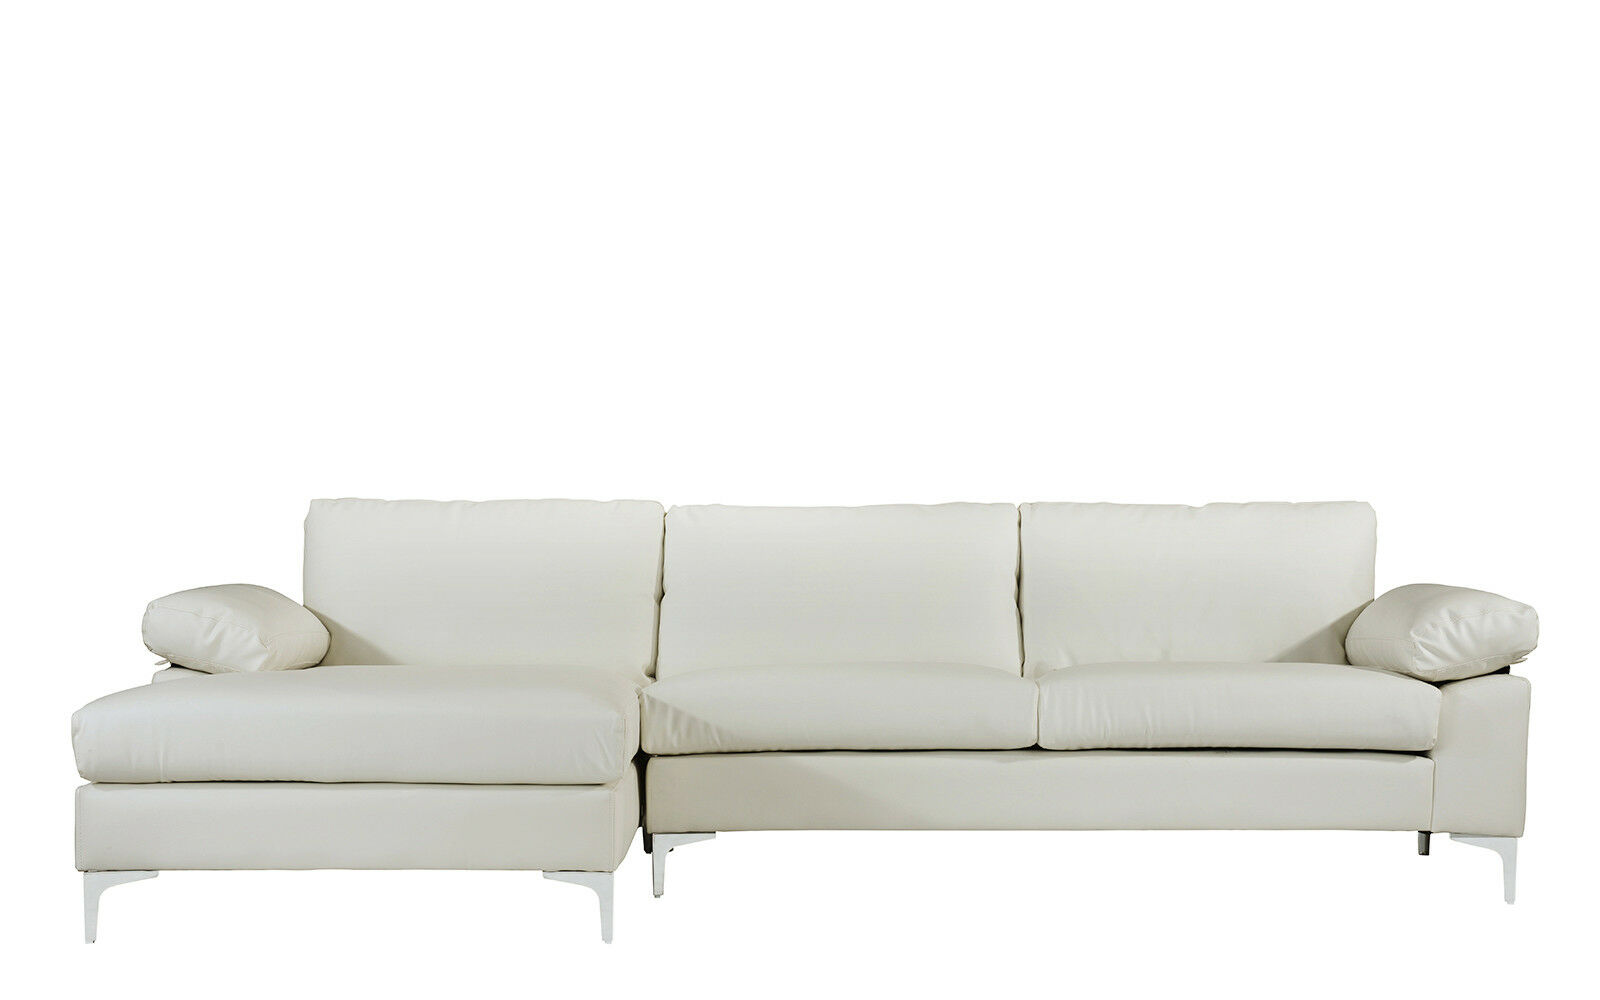 Microfiber Sectional Sofa Modern Large Faux Leather Sectional Sofa L Shape Couch Chaise Lounge White